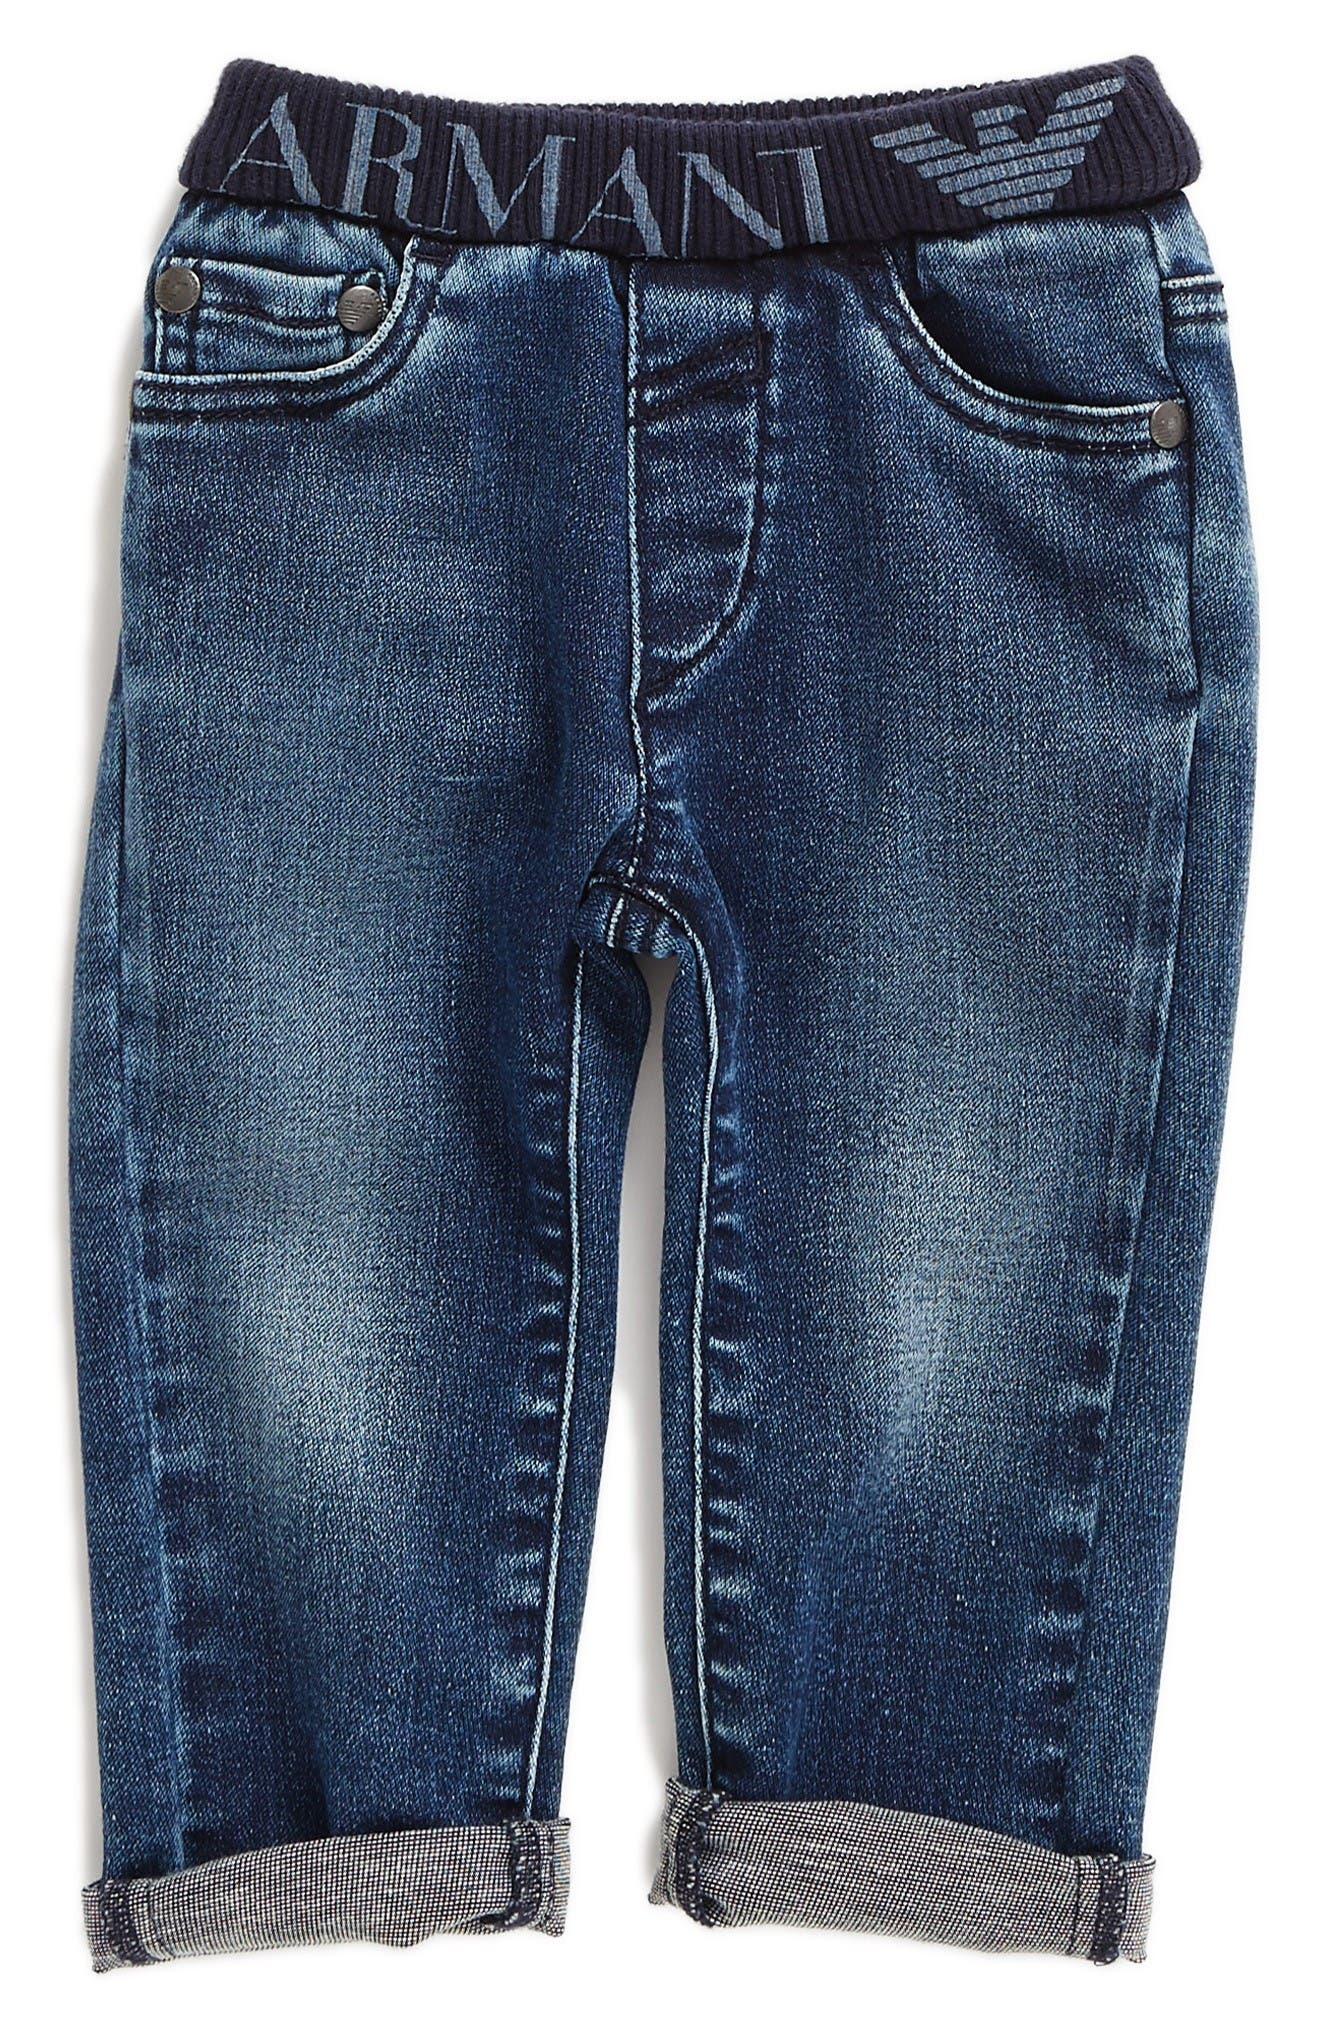 Alternate Image 1 Selected - Armani Junior Elastic Waist Cuffed Jeans (Baby Boys)